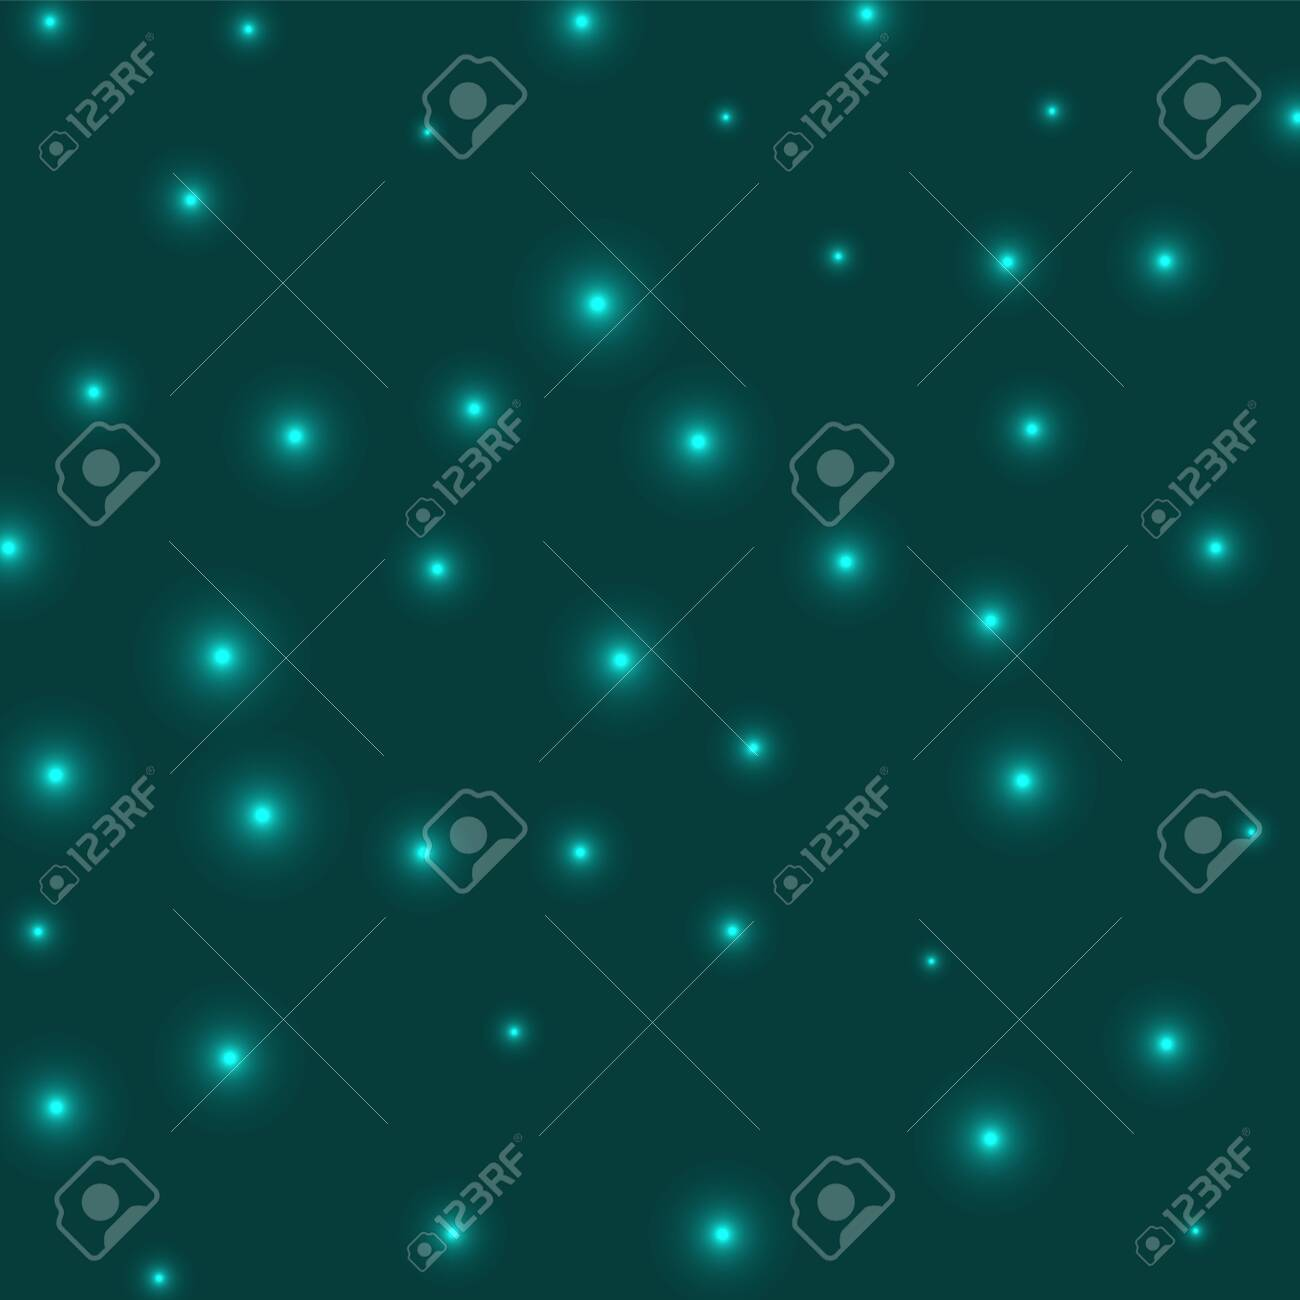 Starry background. Stars evenly scattered on cyan background. Appealing glowing space cover. Superb vector illustration. - 147259171